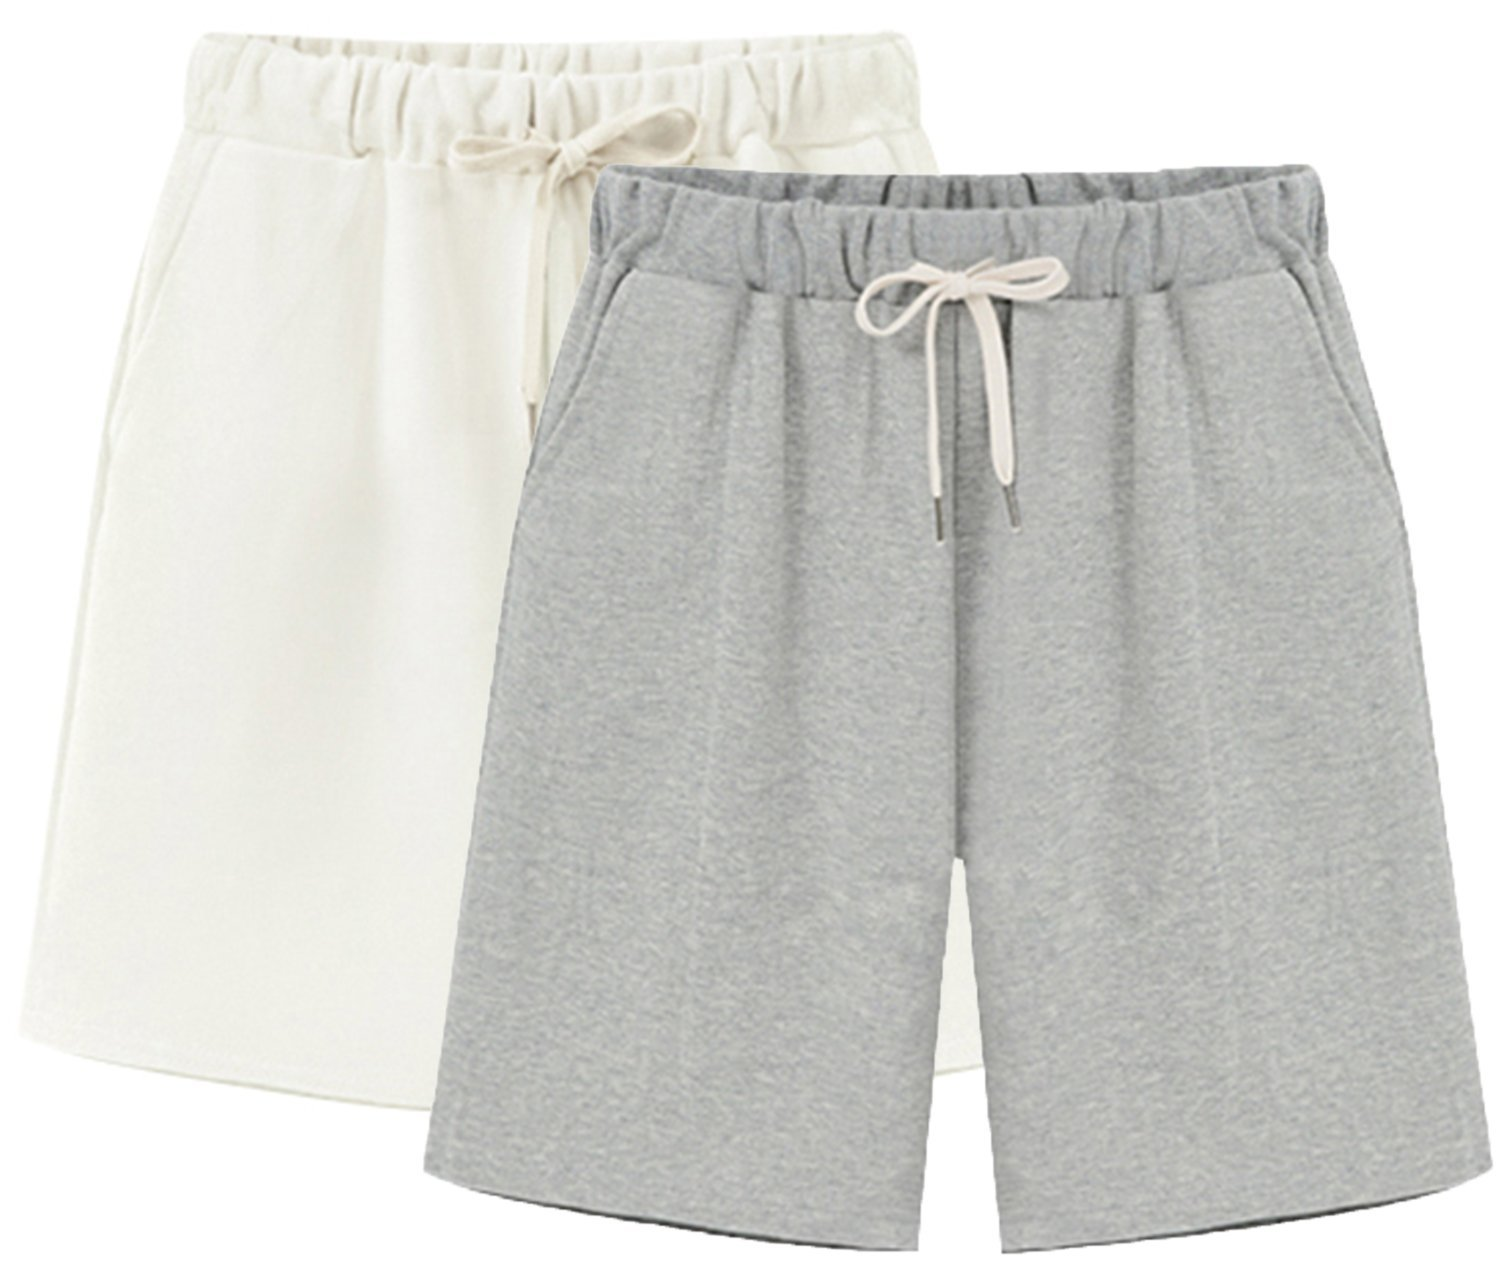 Vcansion Women's Lightweight Casual Shorts Summer Loose Plus Size Shorts Hiking Shorts Elastic Waist Drawstring 2 Pack(White+Grey) Tag 6XL/US 16W by Vcansion